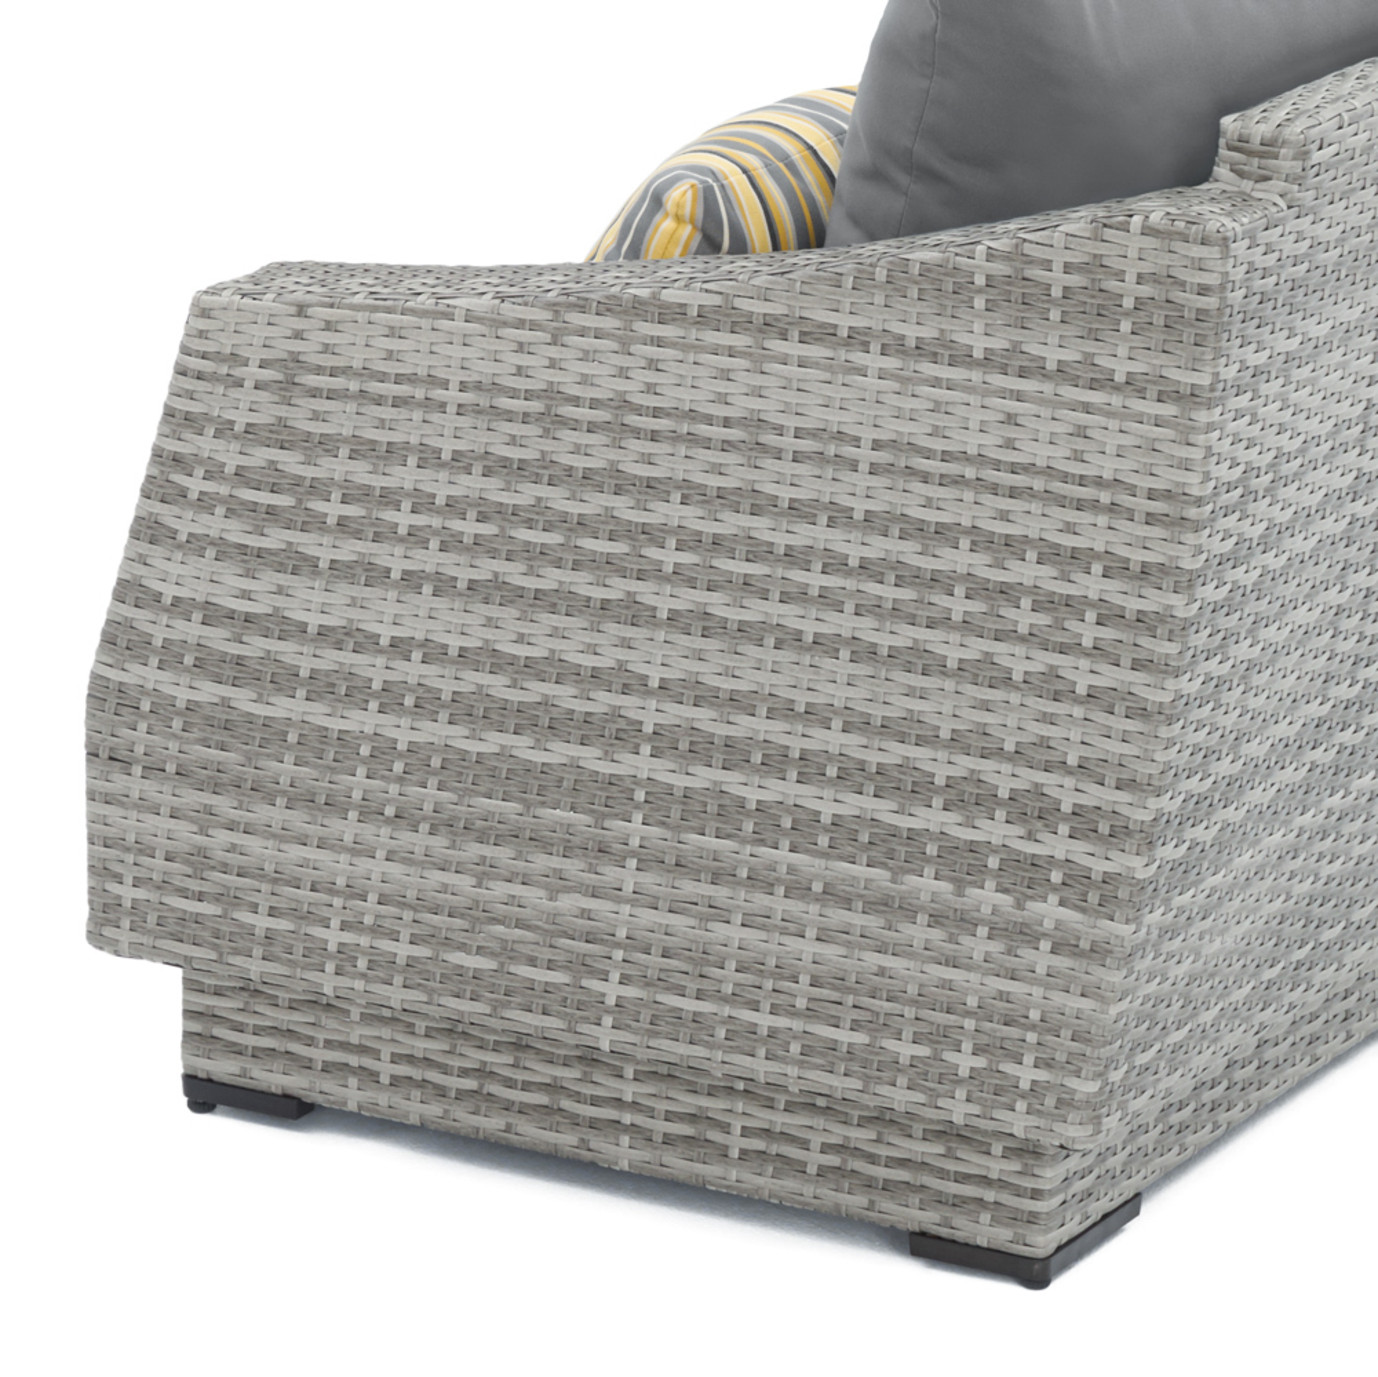 Cannes™ 6pc Sectional & Table - Charcoal Gray